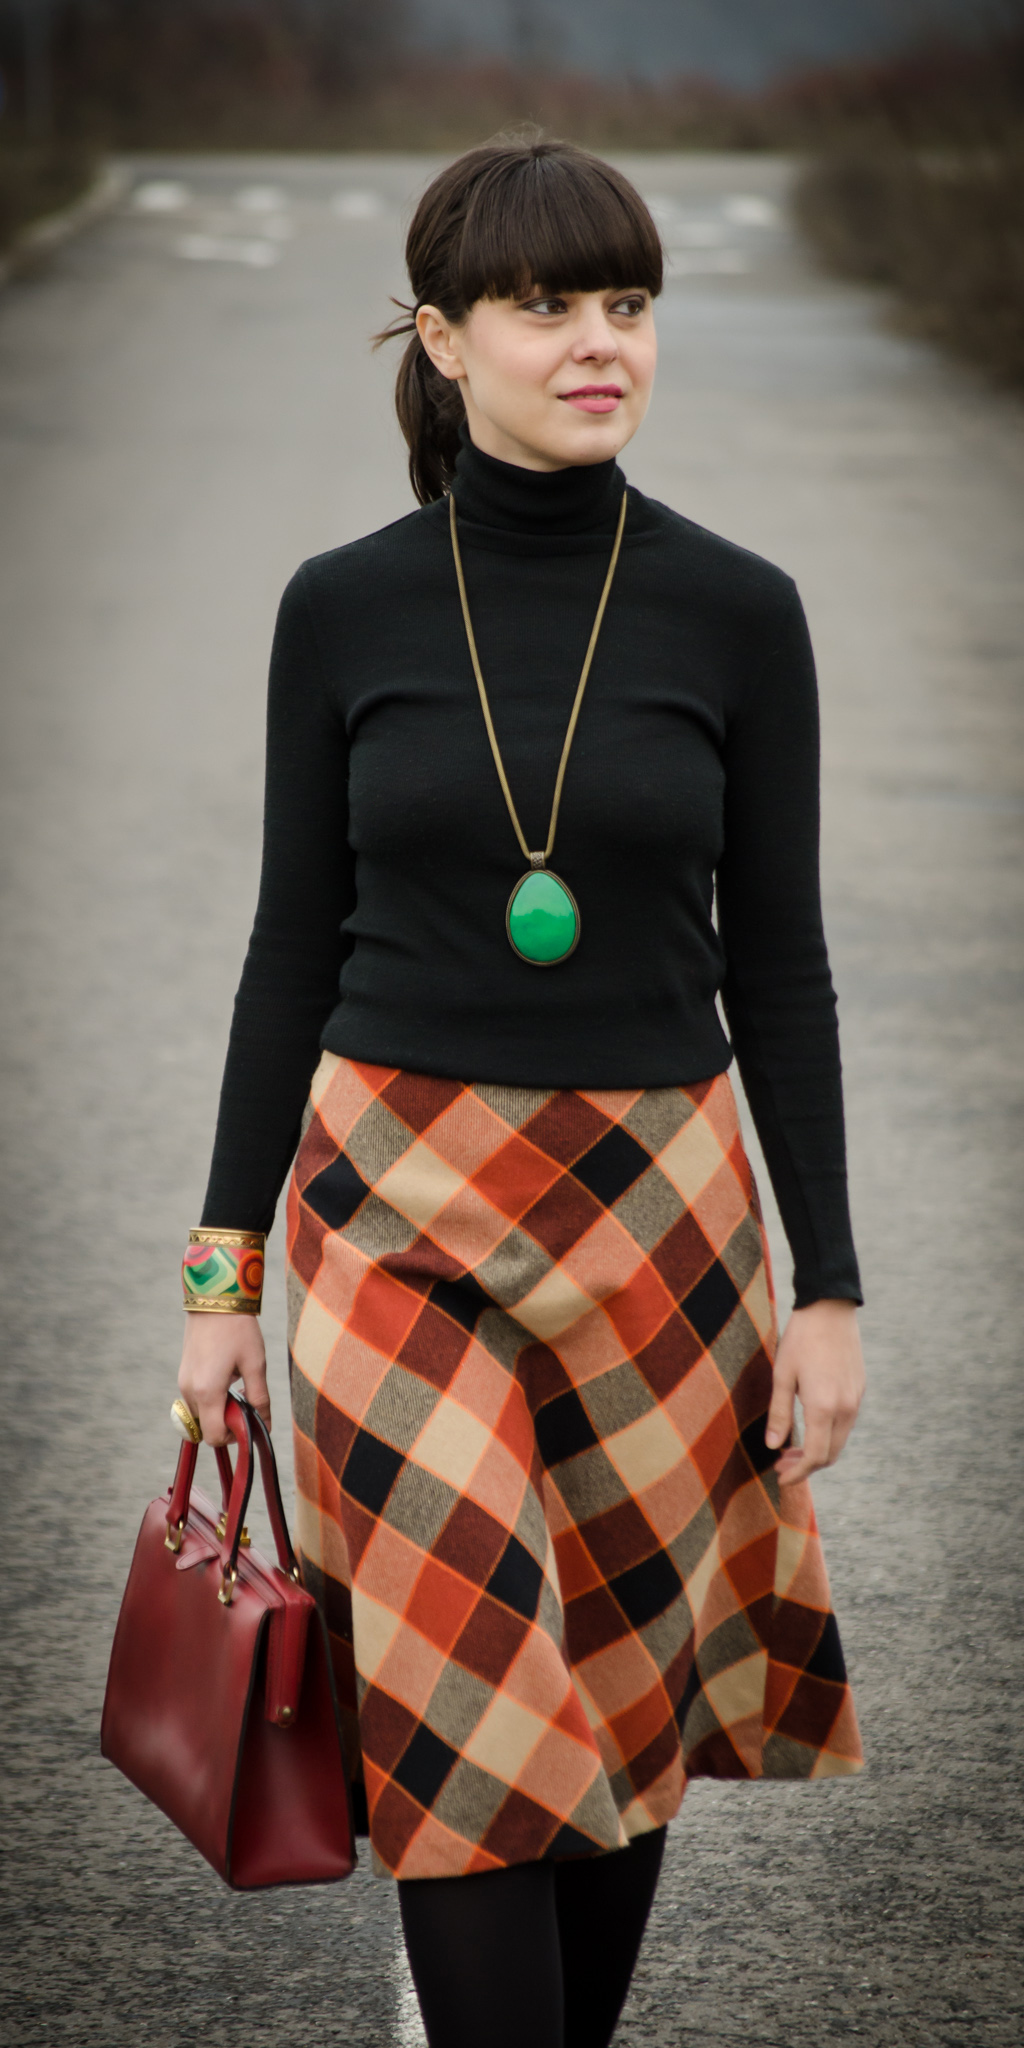 a-line checkers skirt 70s black turtleneck vintage thrifted koton burgundy shoes handbag high heels statement green jewlery necklace